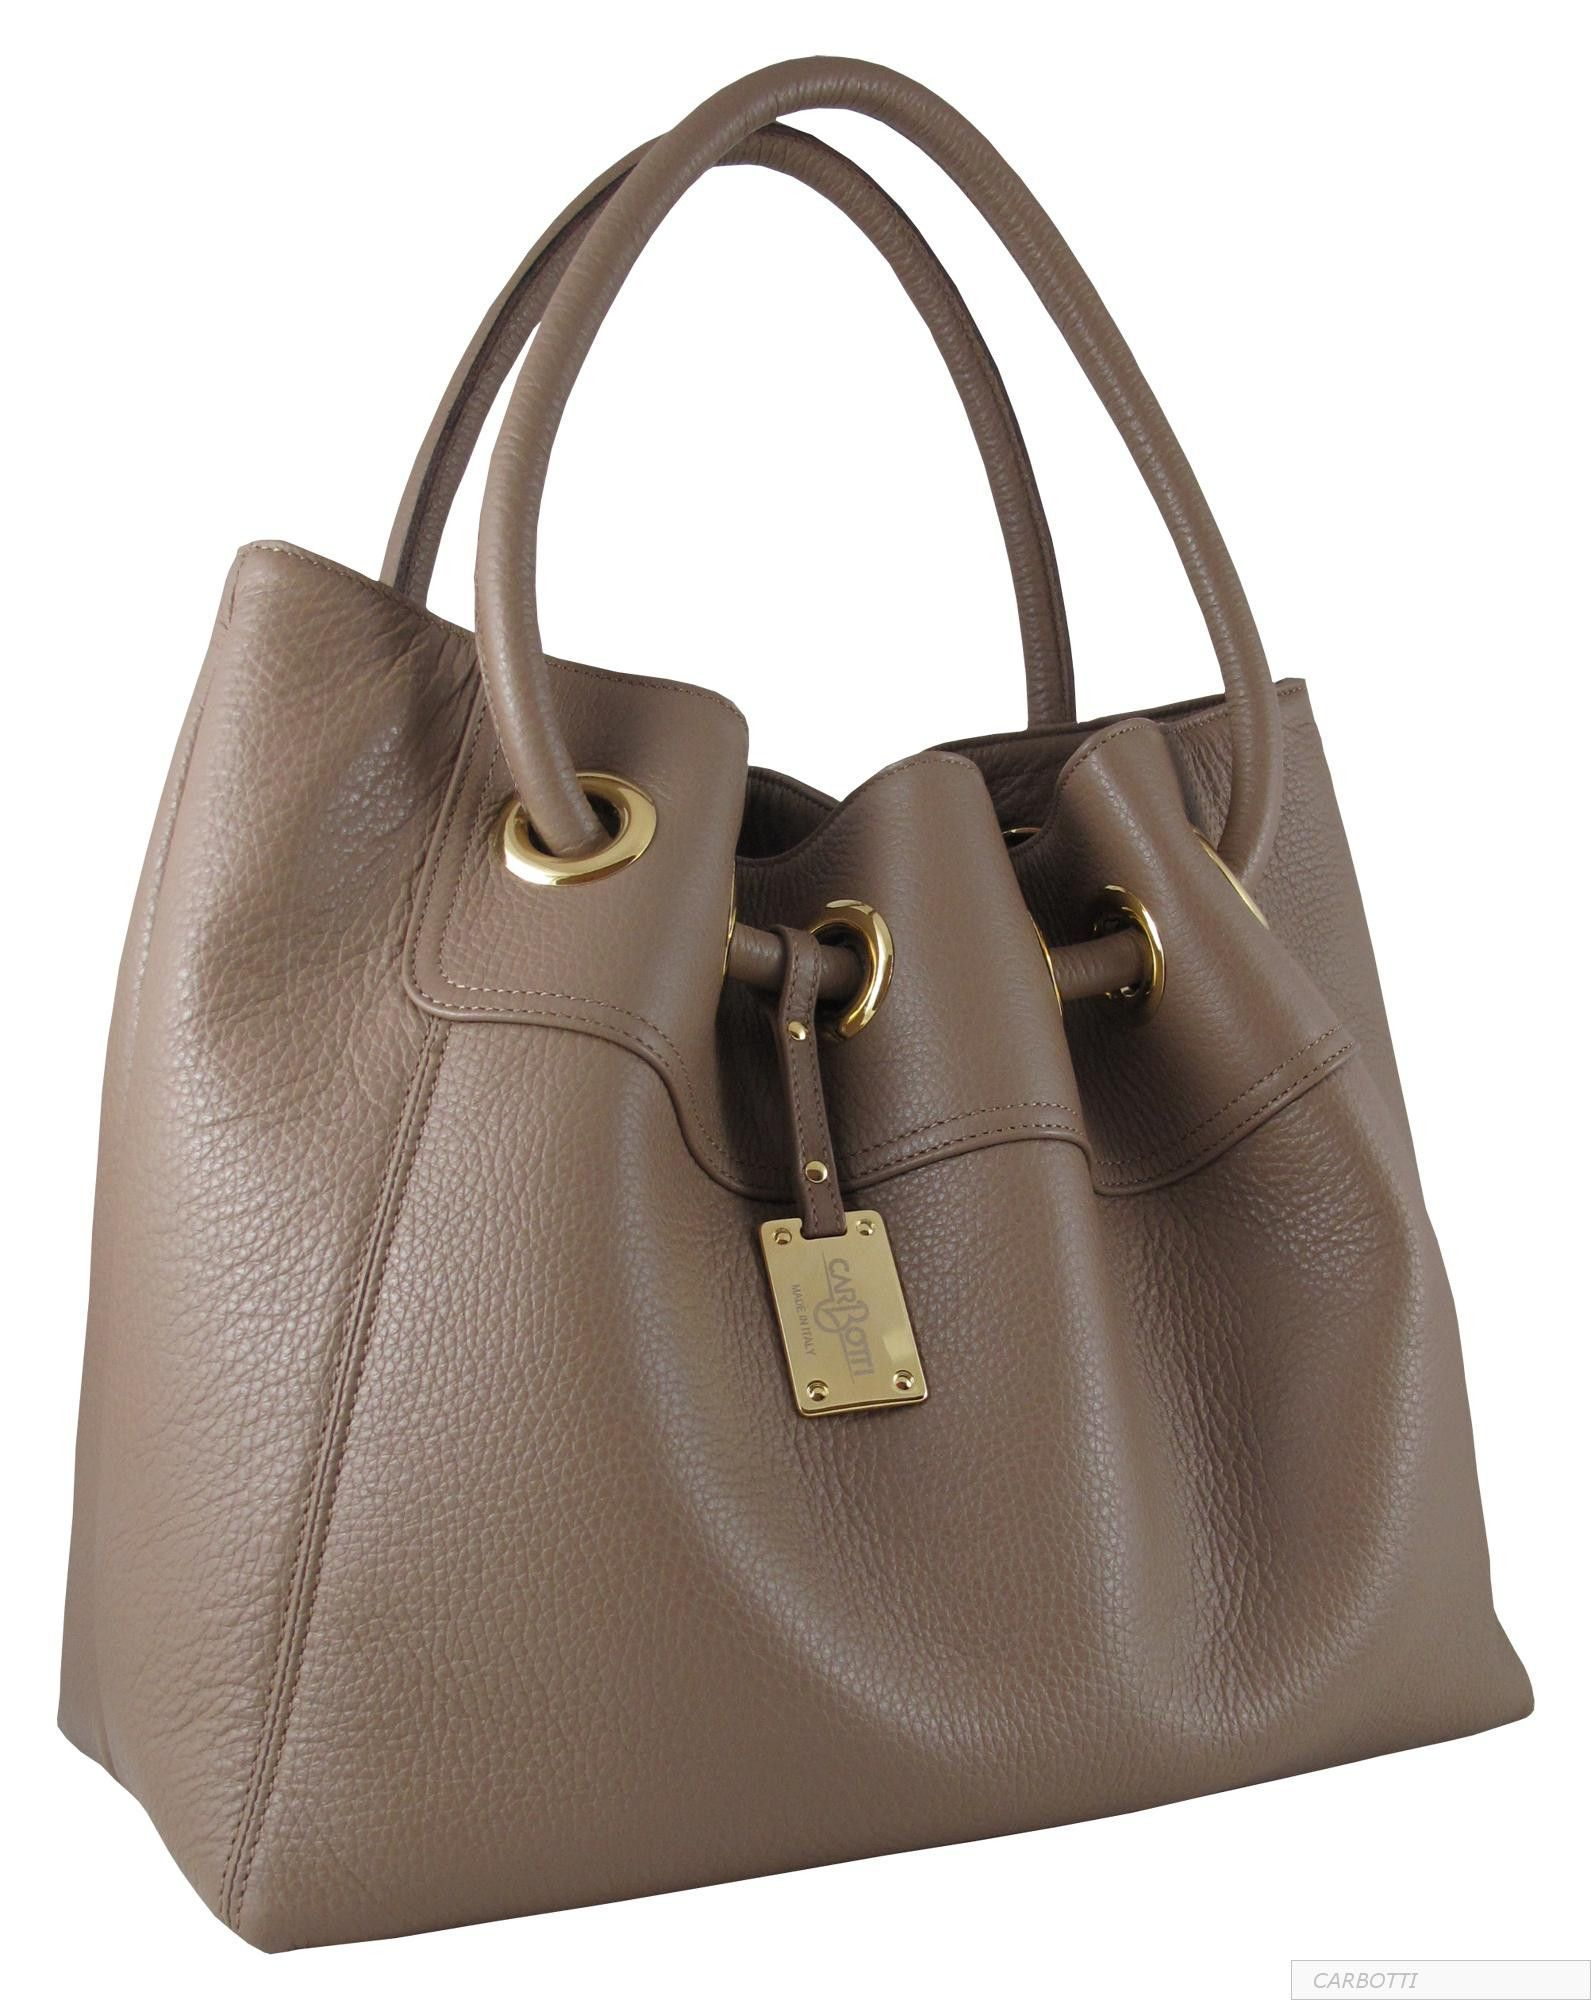 Cuccino Handbag In Italian Leather By Carbotti 12 Las Bags Purses Clutches Wallets Pinterest And